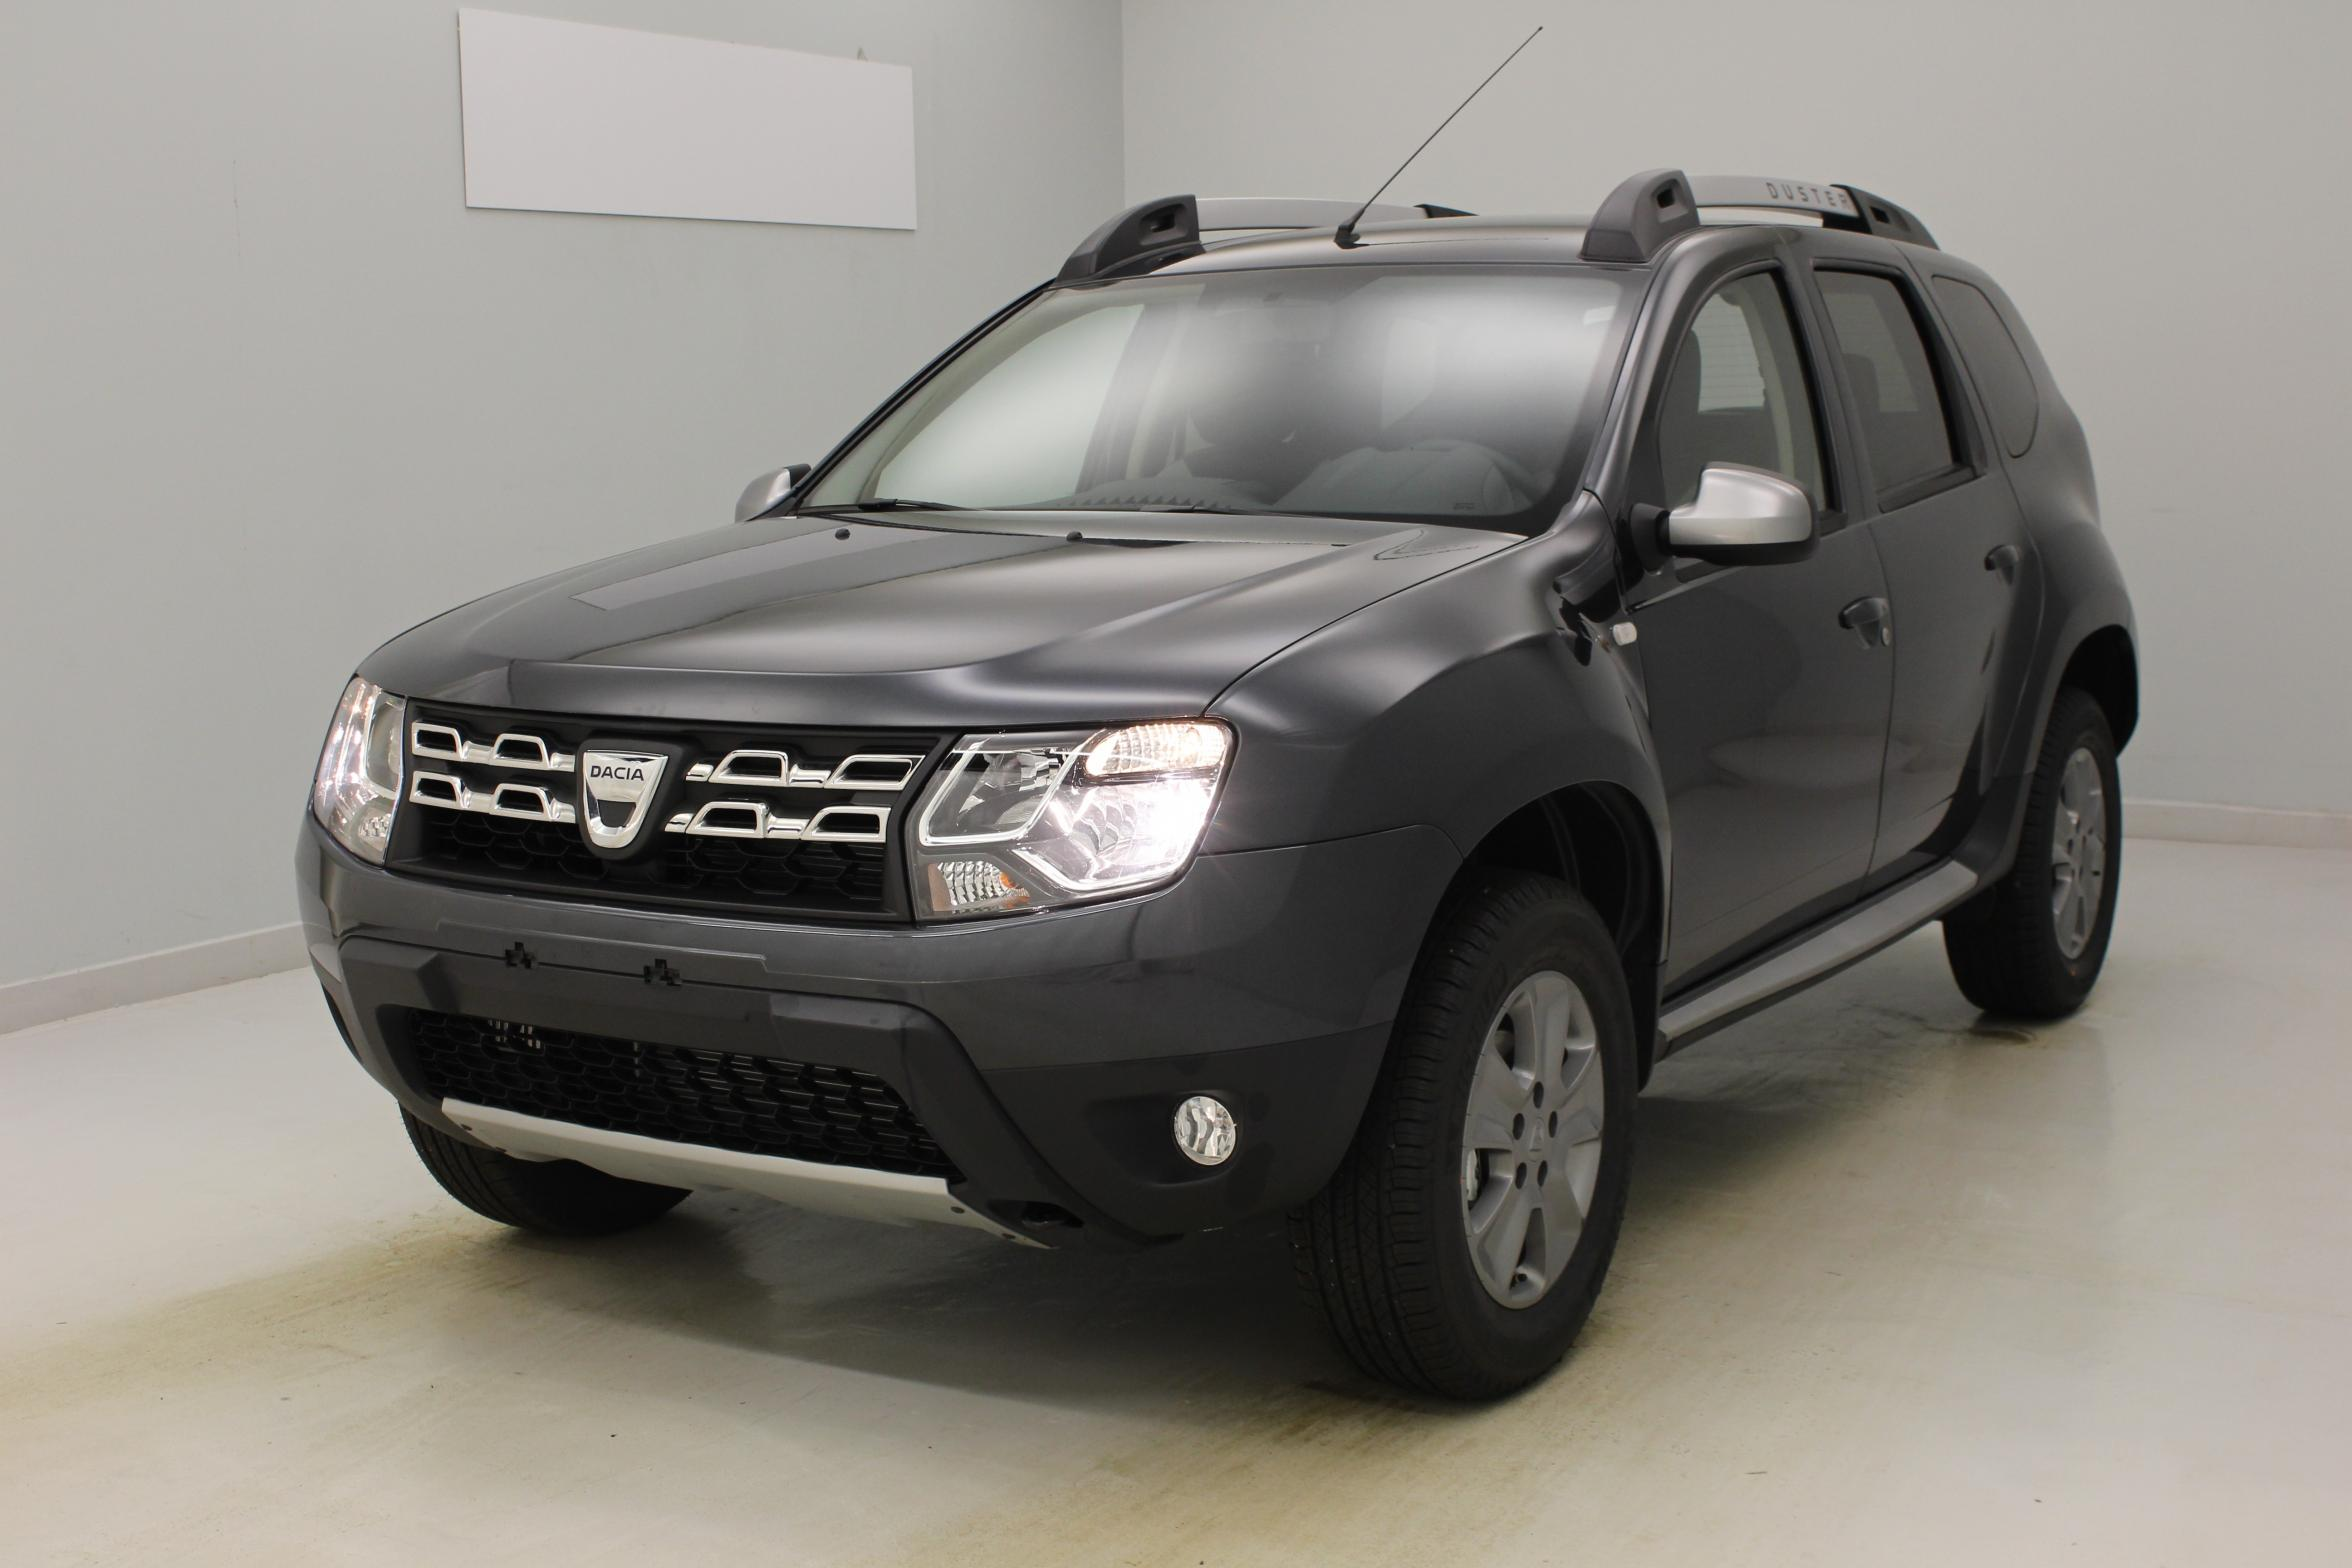 photos de dacia duster tce 125 4x2 prestige edition 2016. Black Bedroom Furniture Sets. Home Design Ideas